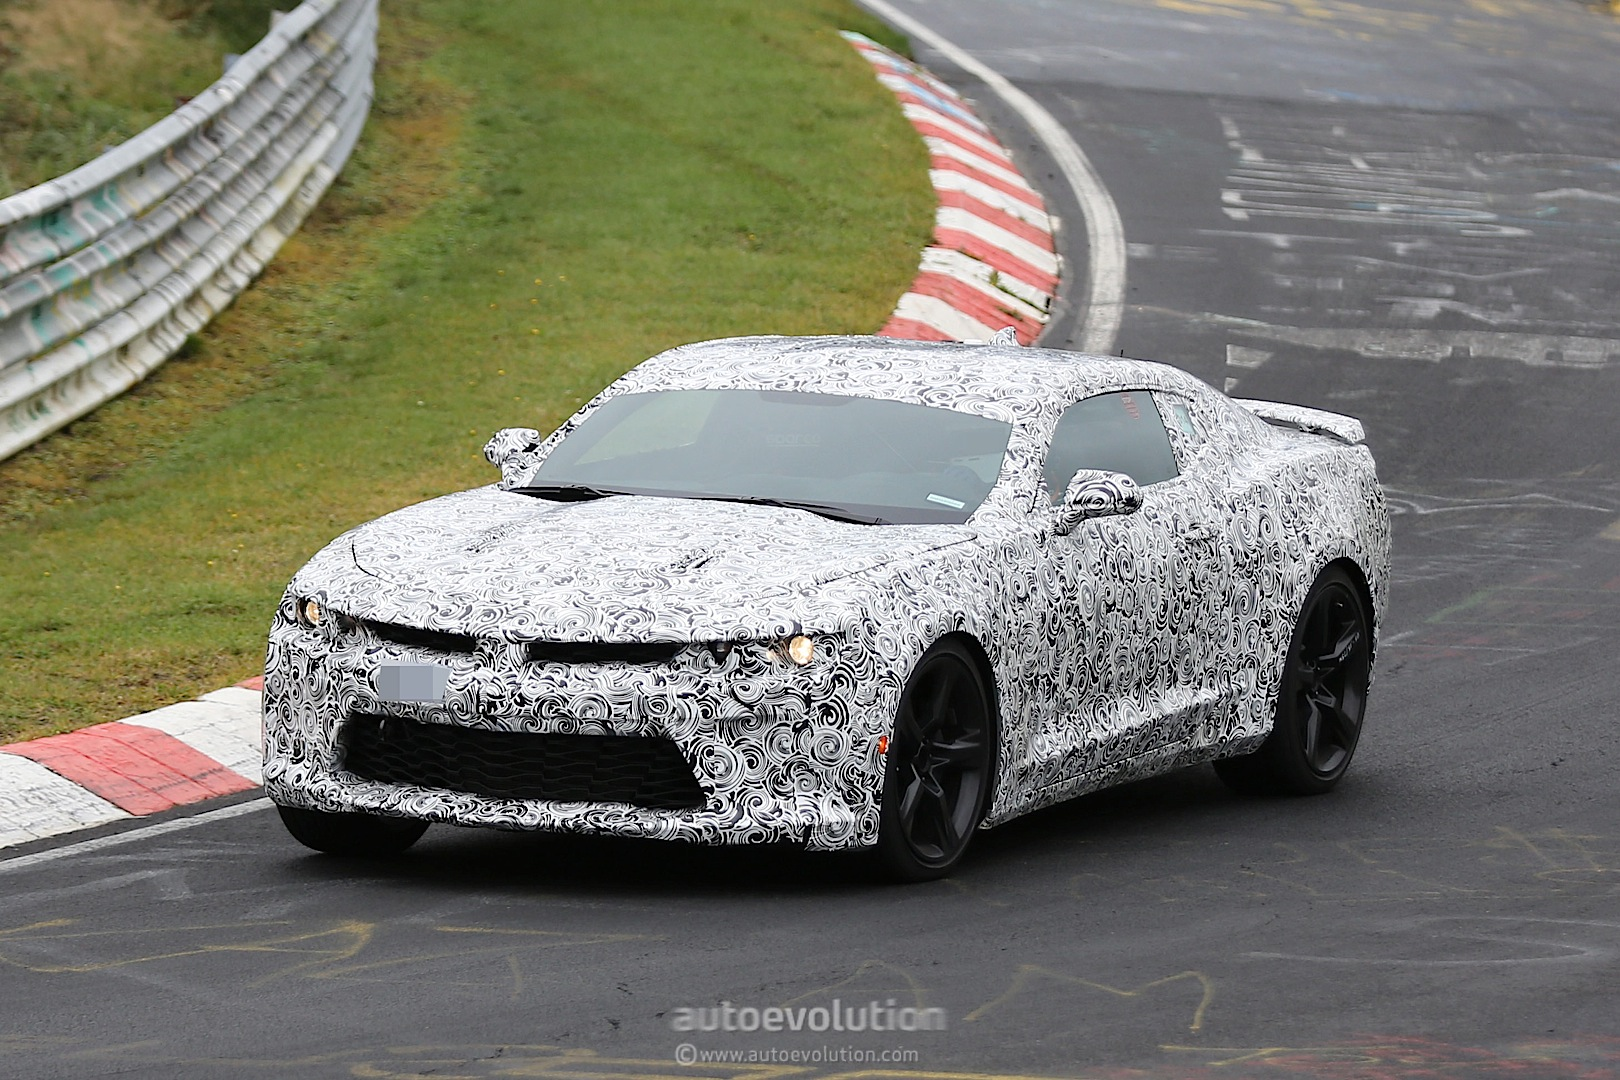 Trufiber Chevrolet Camaro Super Sport Trufiber Ram Air Hood besides Camaro Drops Hot Laps On The Nurburgring Photo Gallery also Cced Ce B as well Stanced Wheel Chevy Silverado Rides On Forgiato Dually Wheels With Spiked Nuts also Maxresdefault. on car chevrolet camaro ss